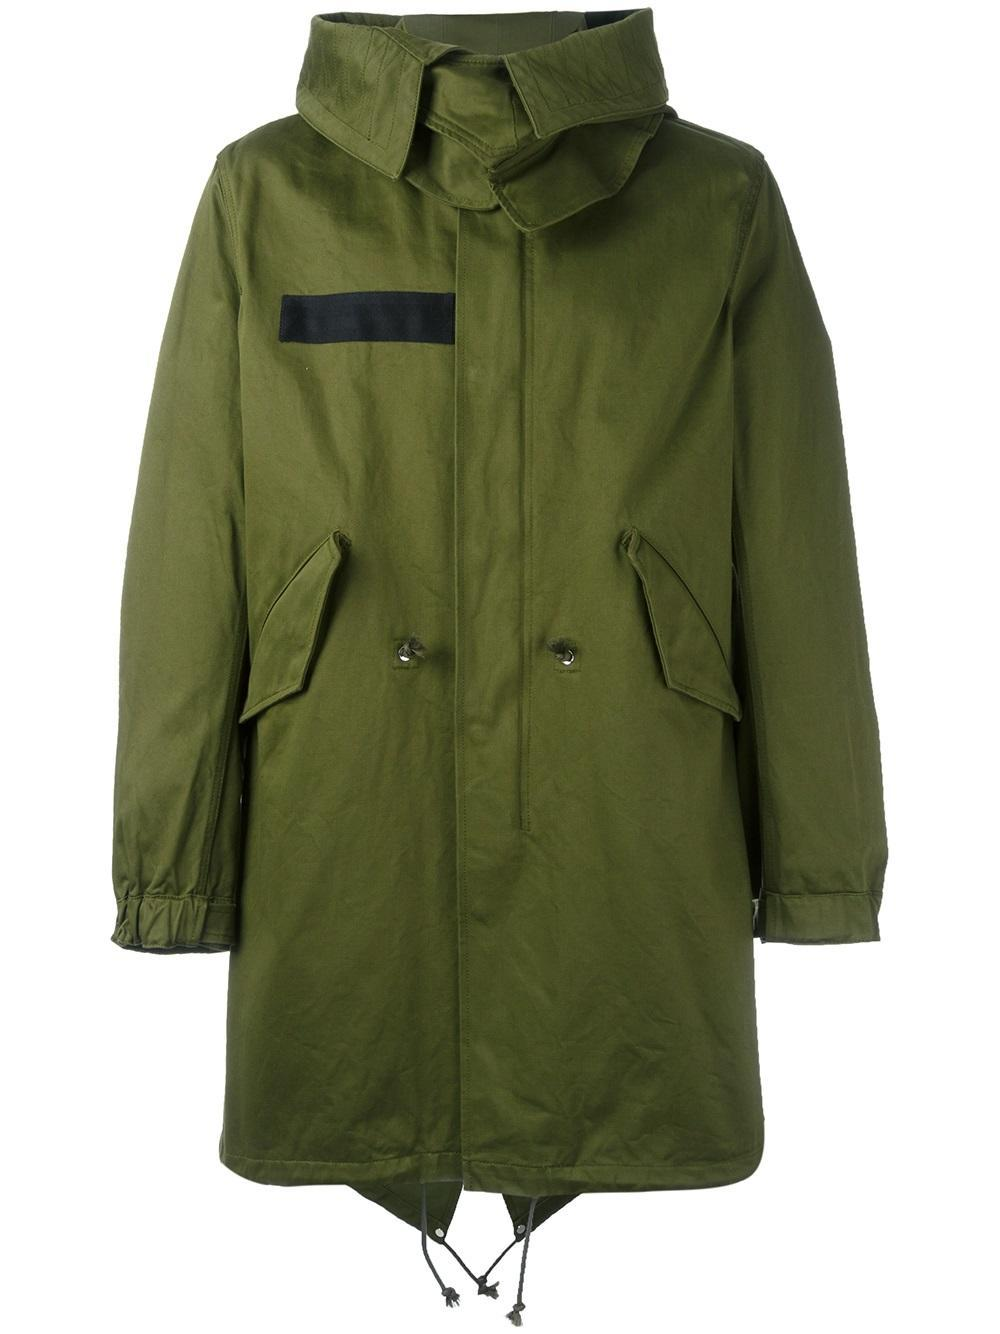 jack and jones coat size guide